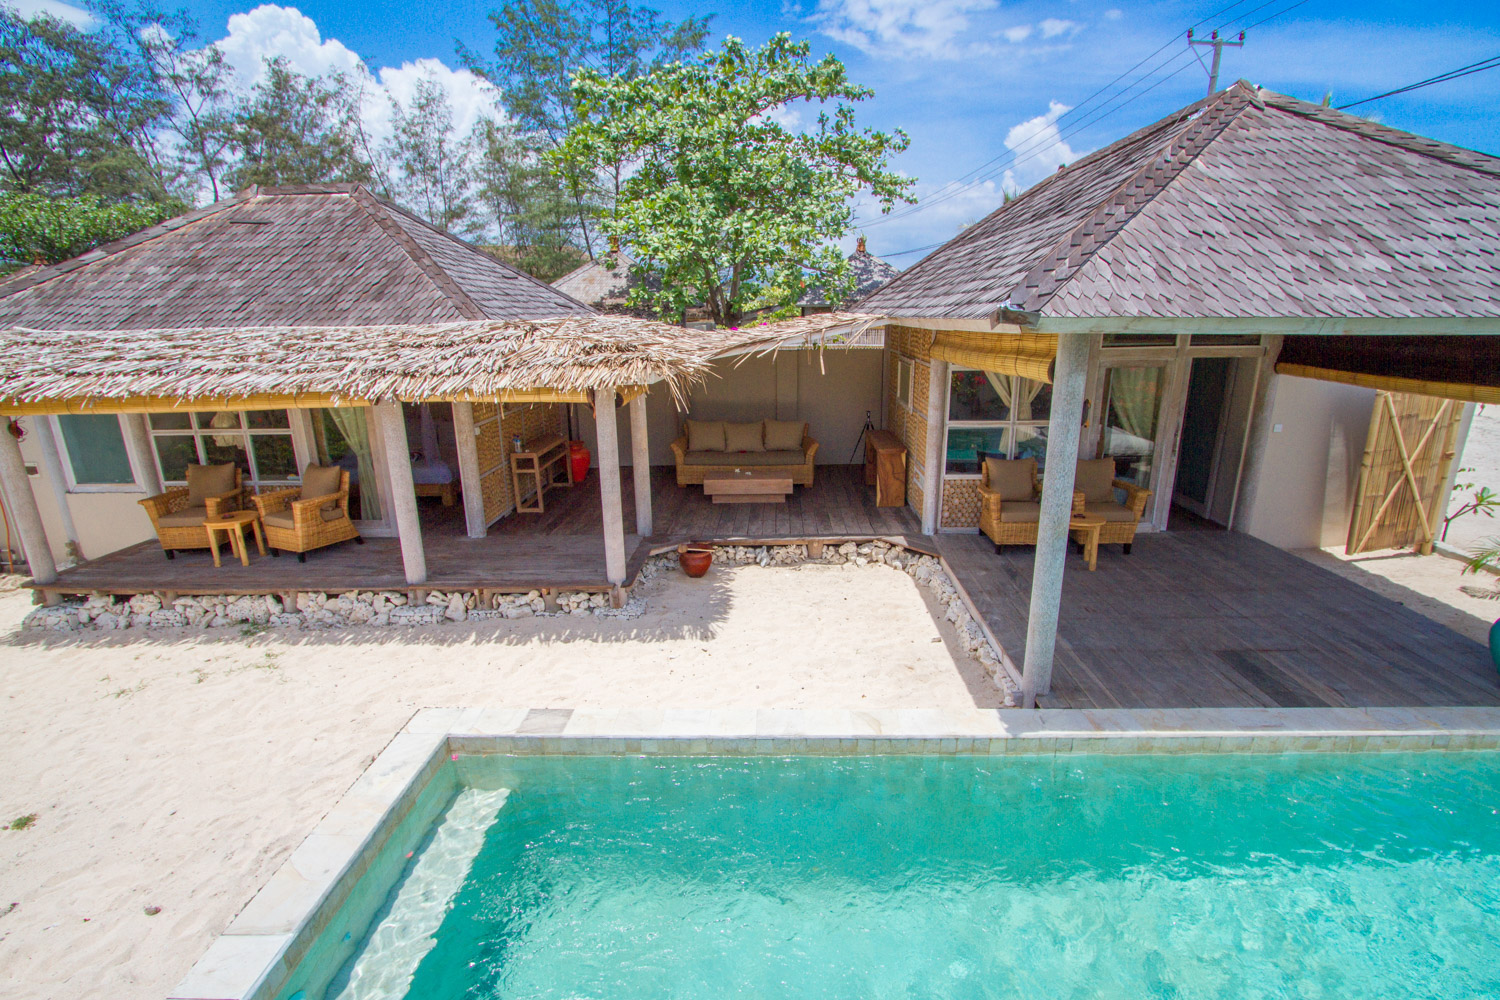 2 bedrooms villa with private pool and garden - Avia villa Resort Gili Meno